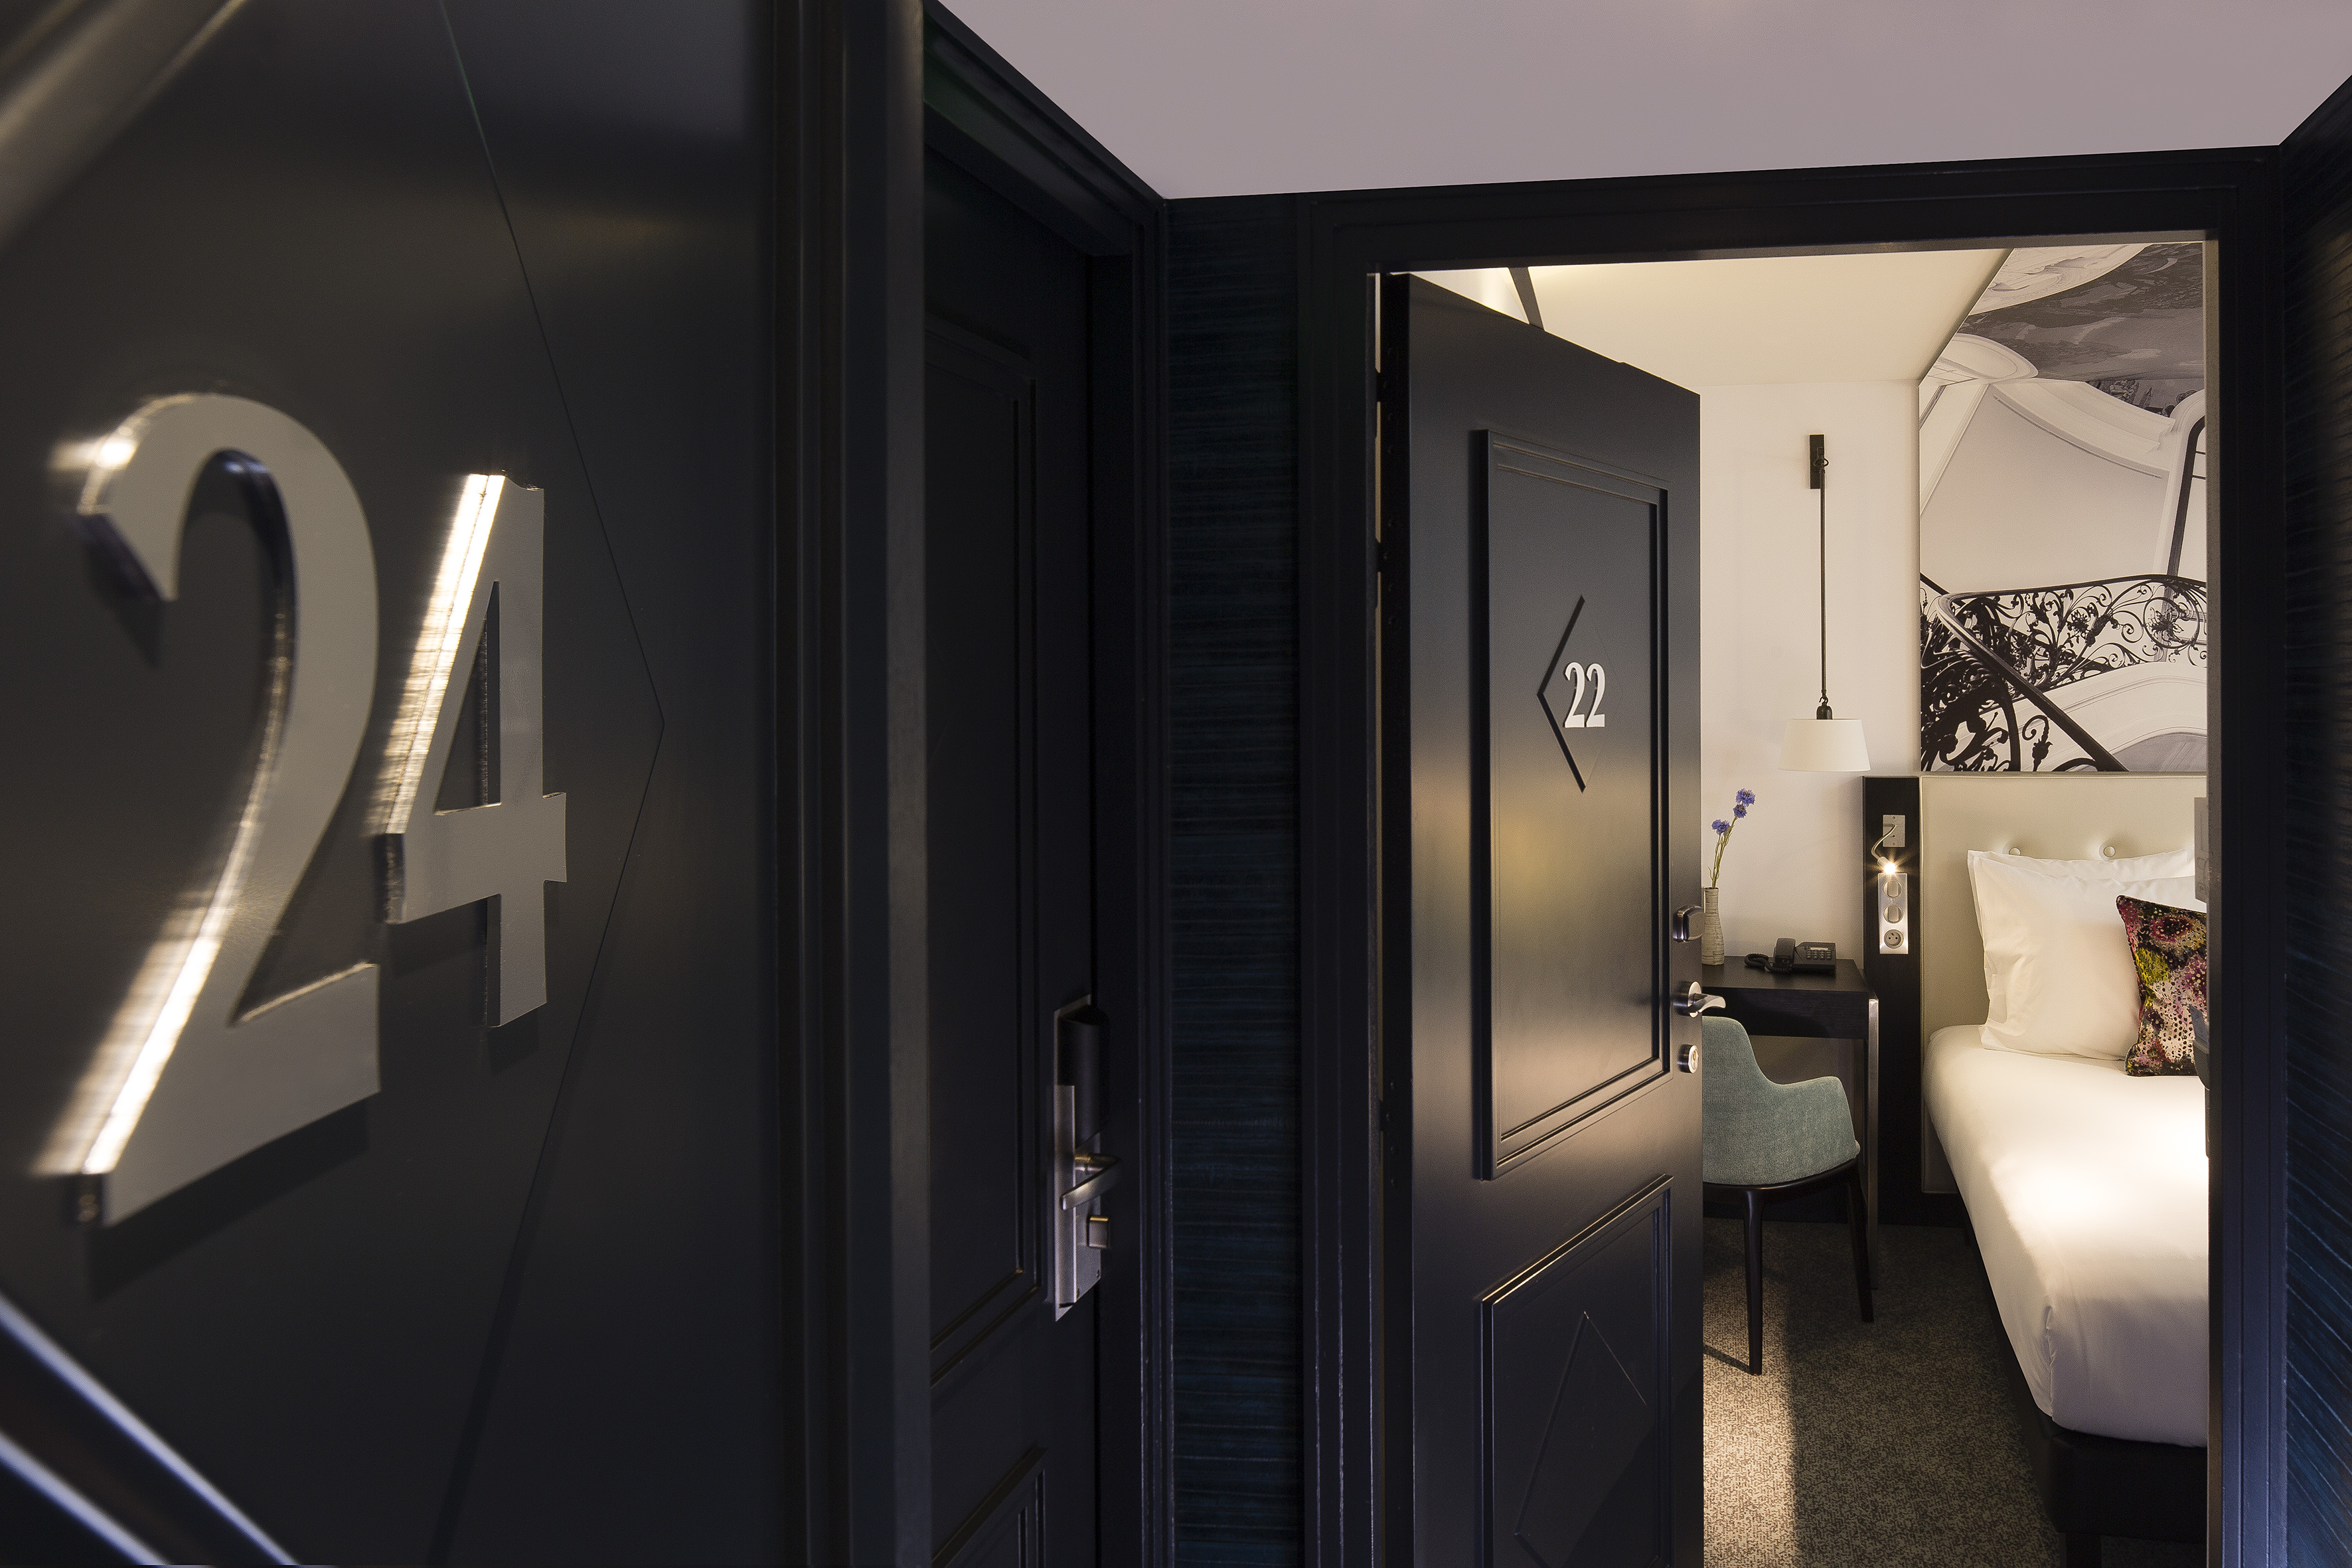 723/Gustave/chambre_/Comm/HOTEL_GUSTAVE_-_Communicantes_-_1.jpg